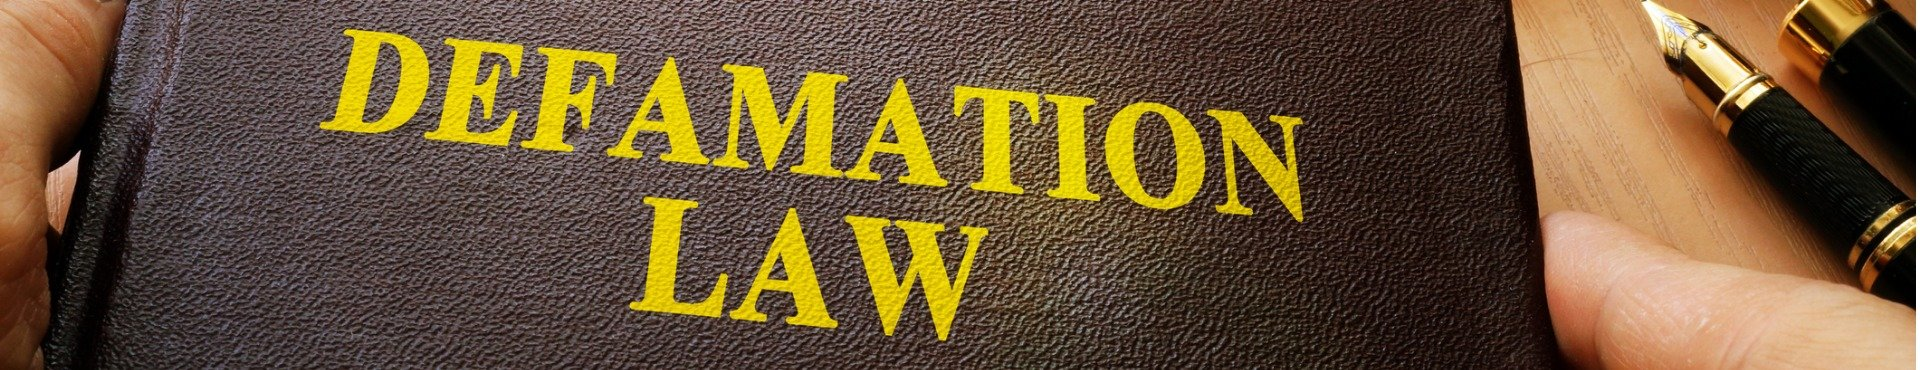 Shine Lawyers | Defamation law and gavel on a table